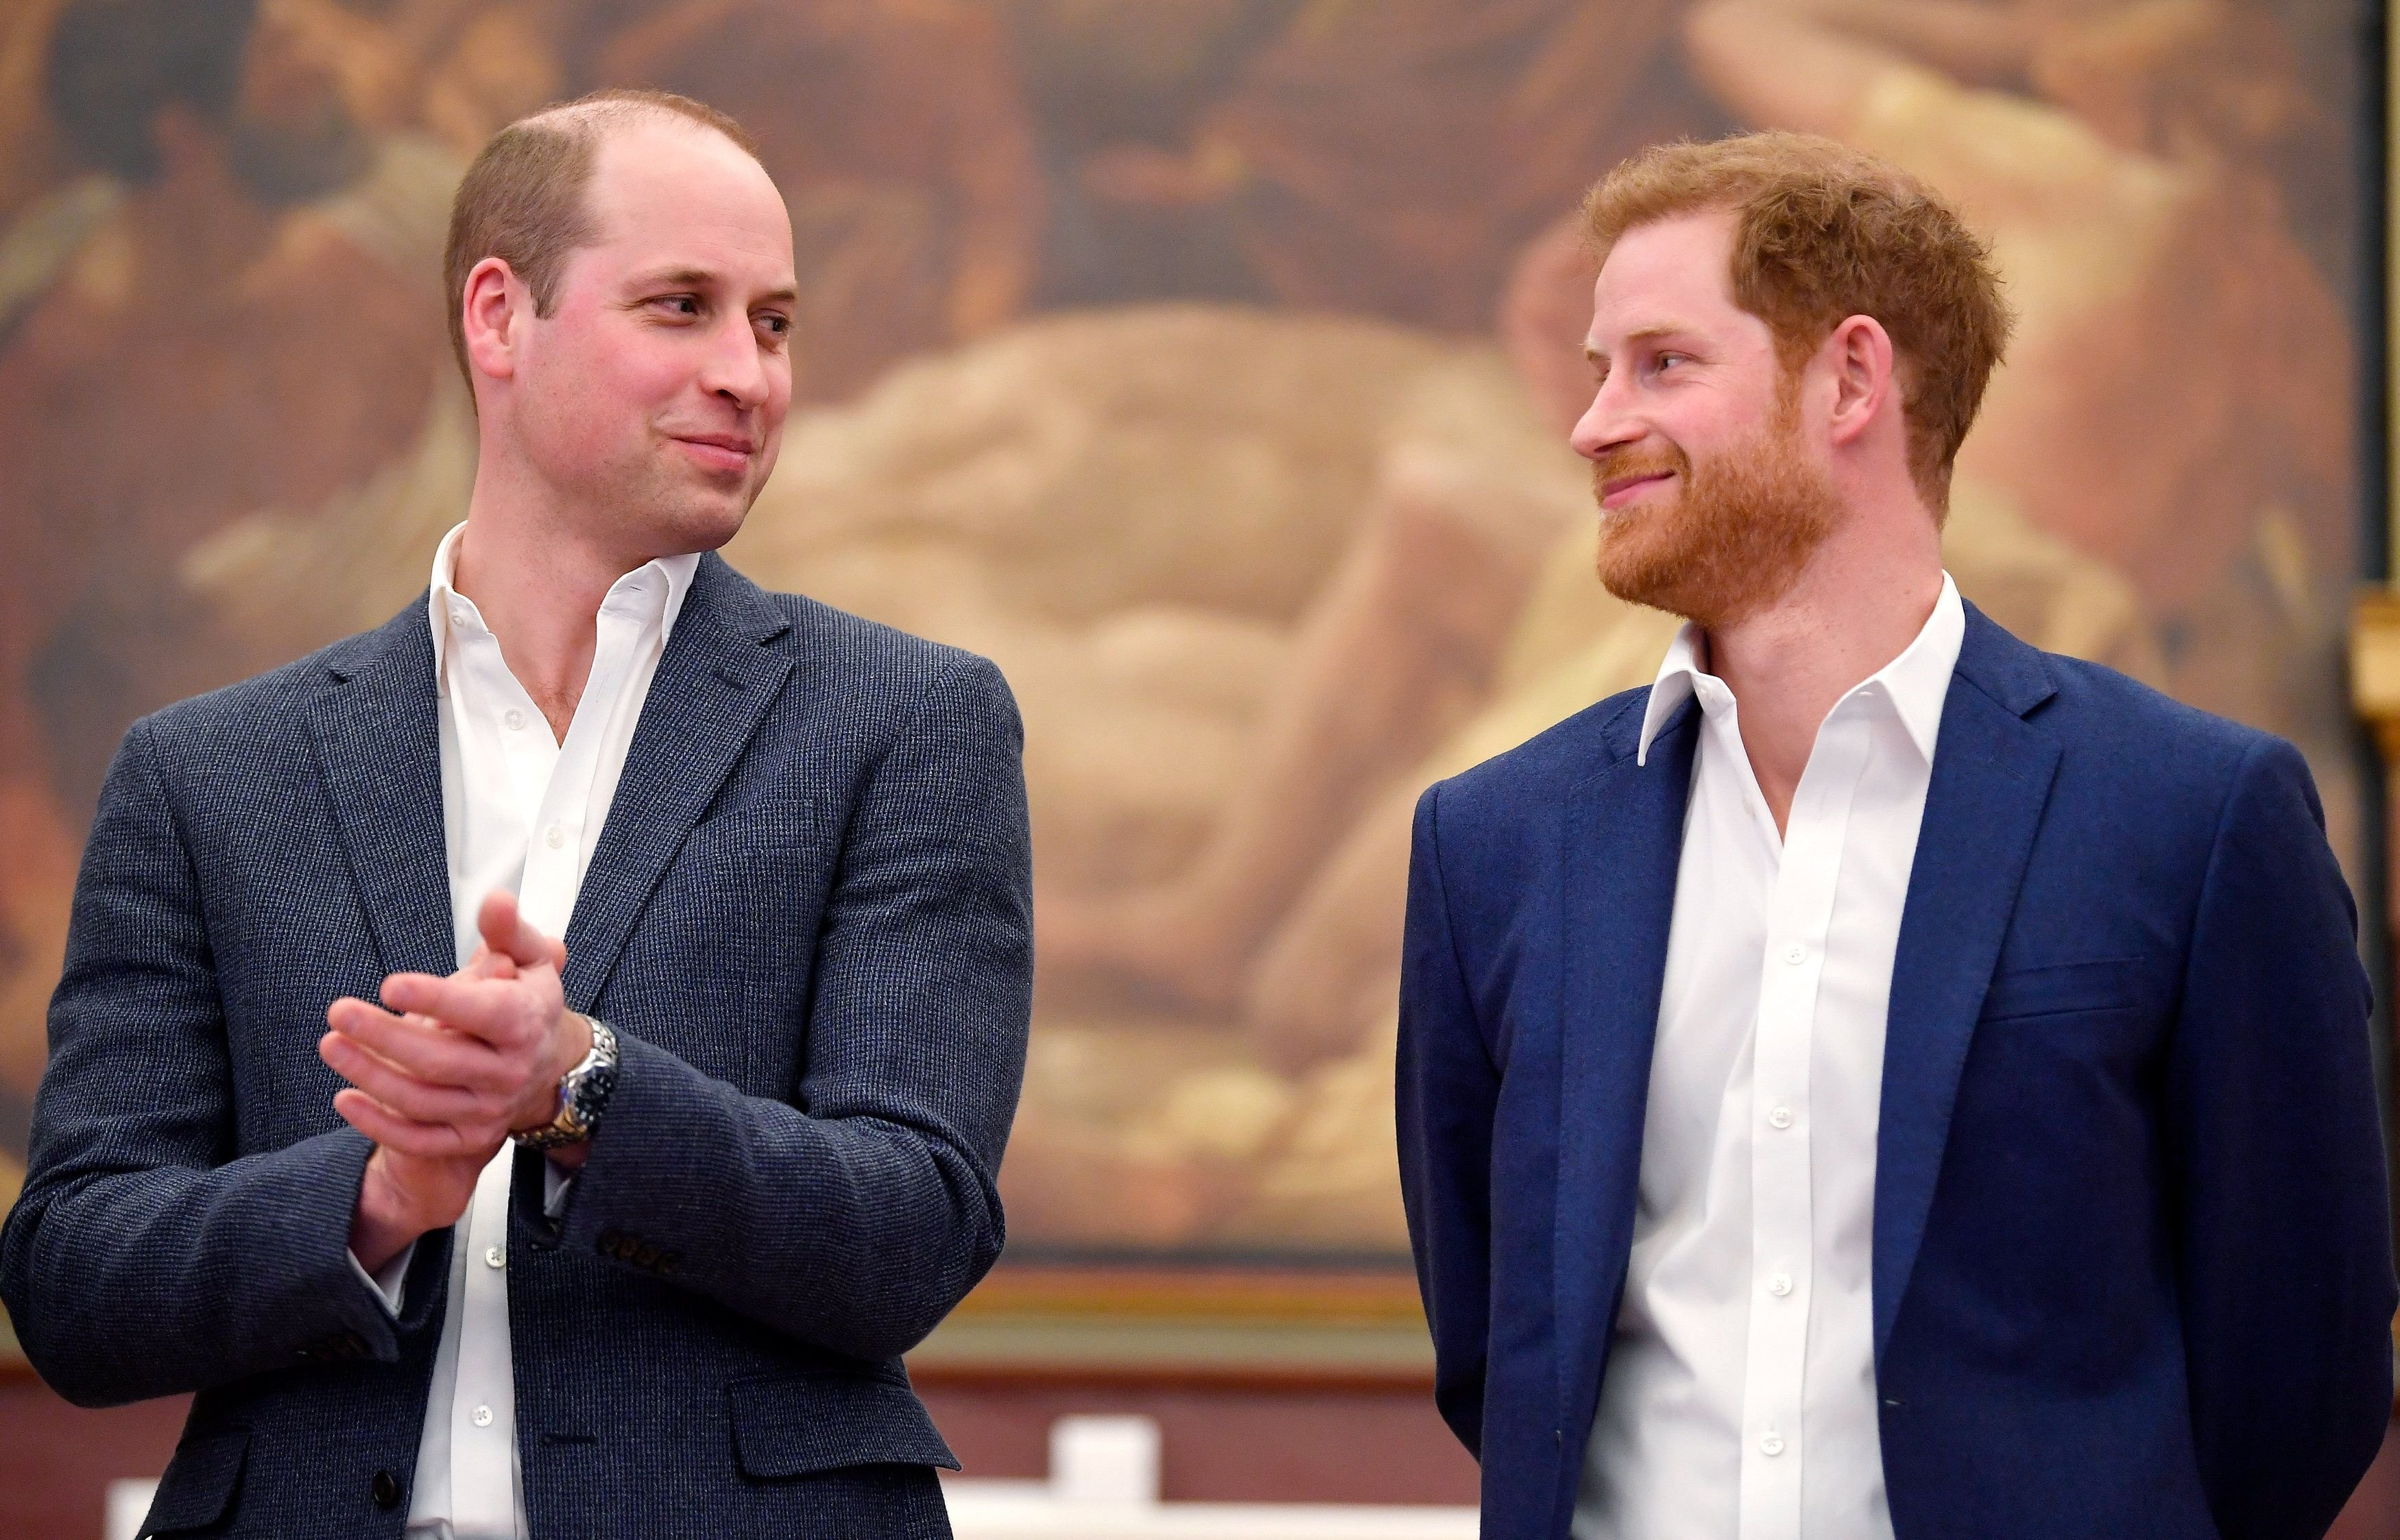 Prince William and Prince Harry at the opening of the Greenhouse Sports Centre on April 26, 2018 | Photo: Getty Images